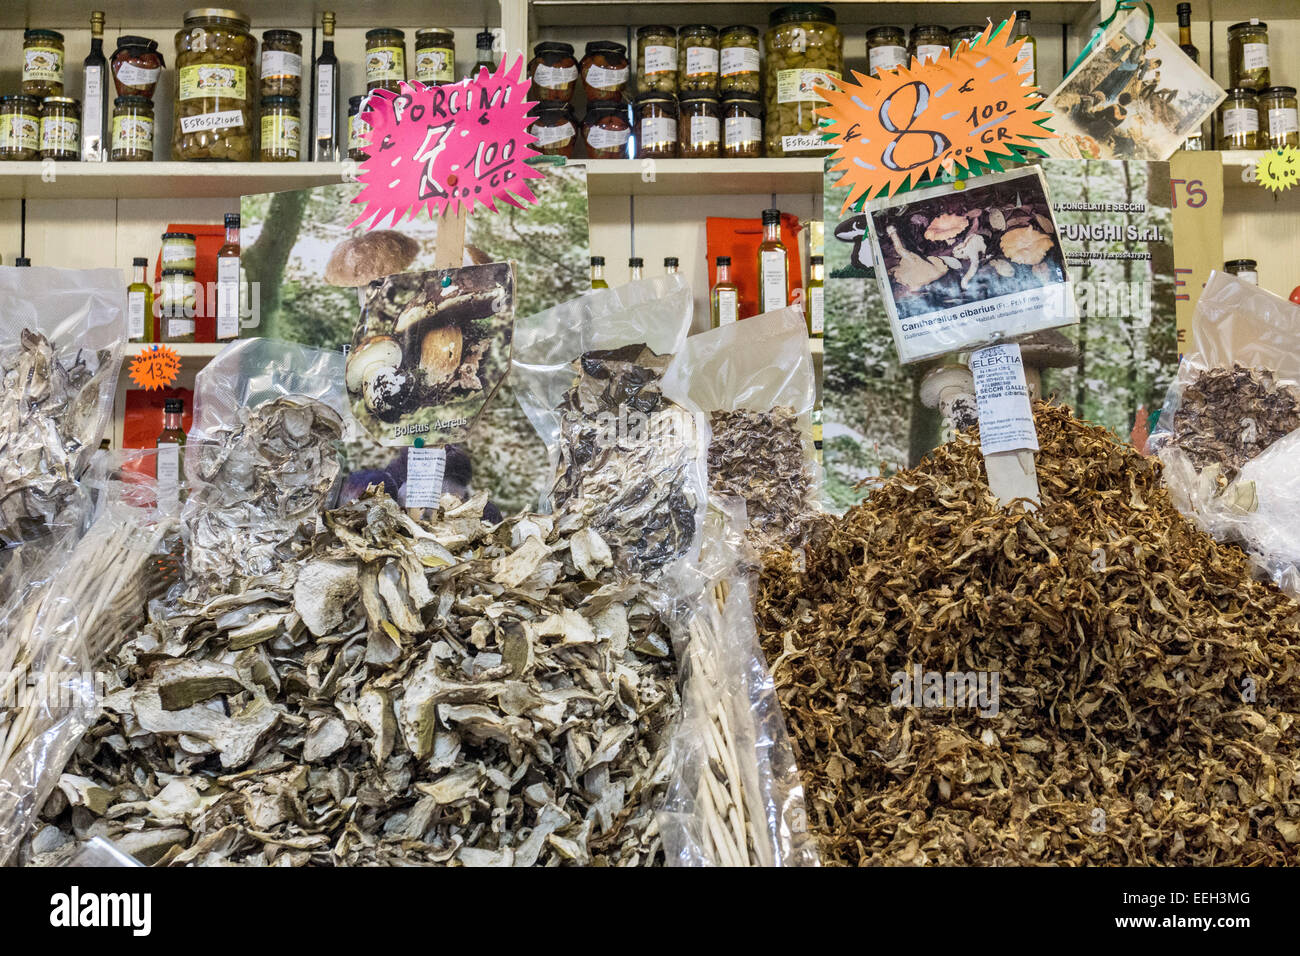 incredible variety including Porcini dried gourmet mushrooms displayed in open baskets & cellophane packages - Stock Image